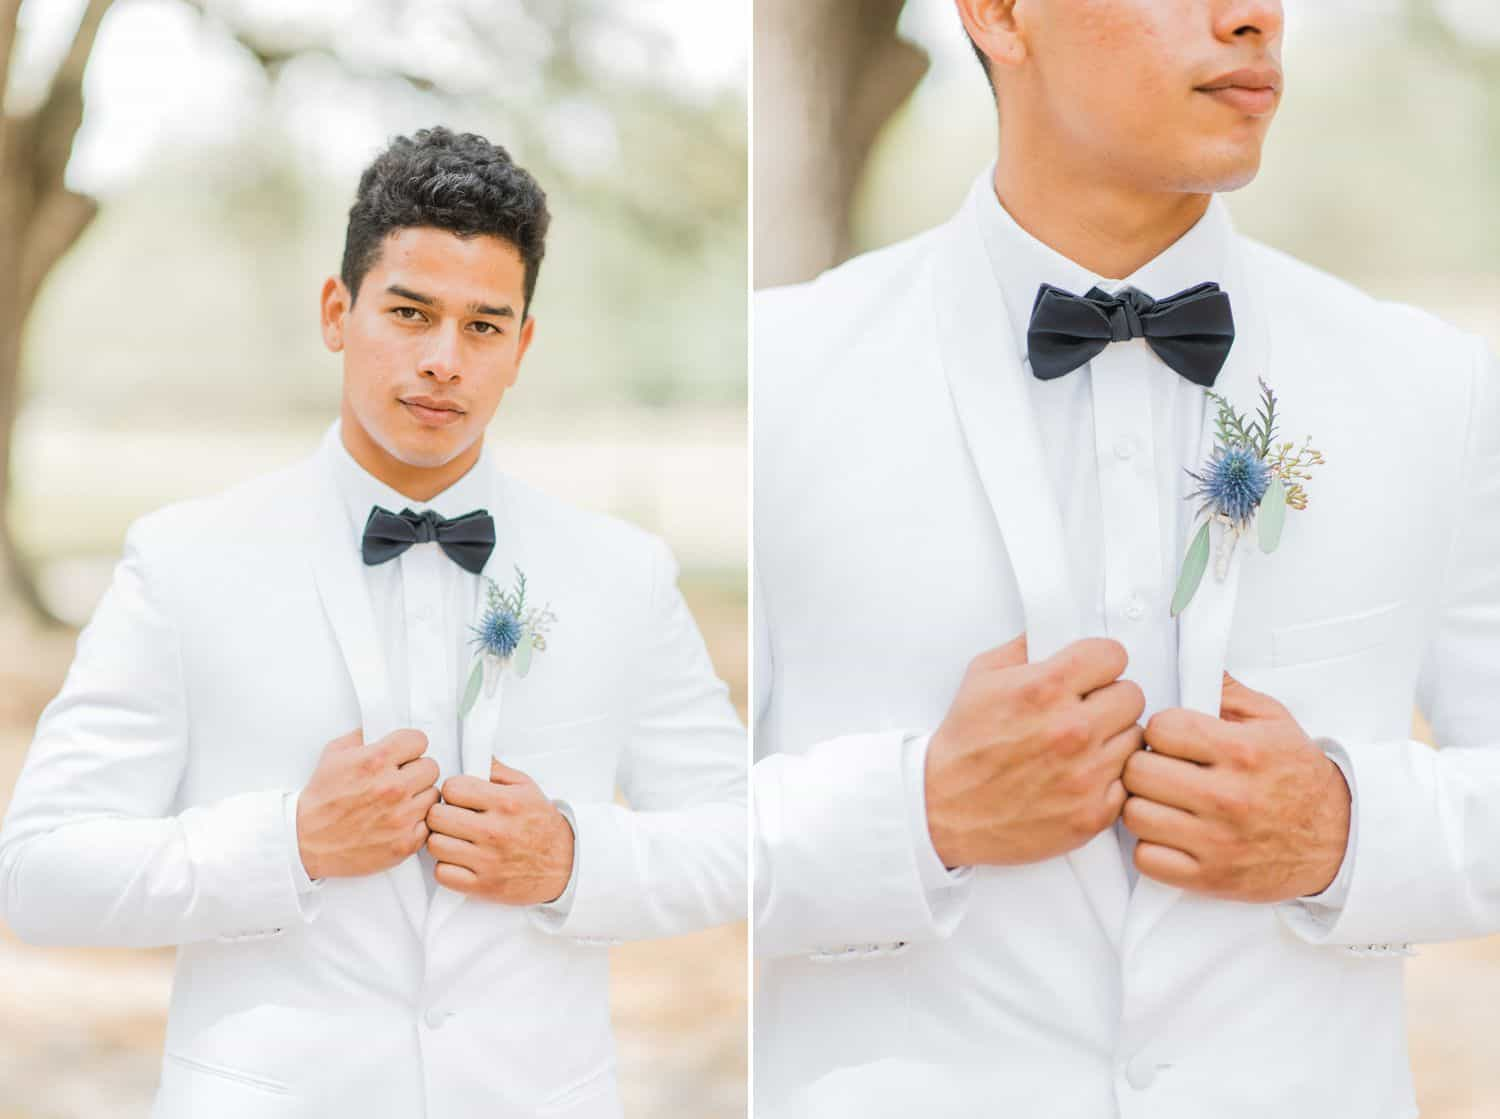 Groom Wearing White Tuxedo & Black Bow Tie: Get Photography Clients with Styled Shoots